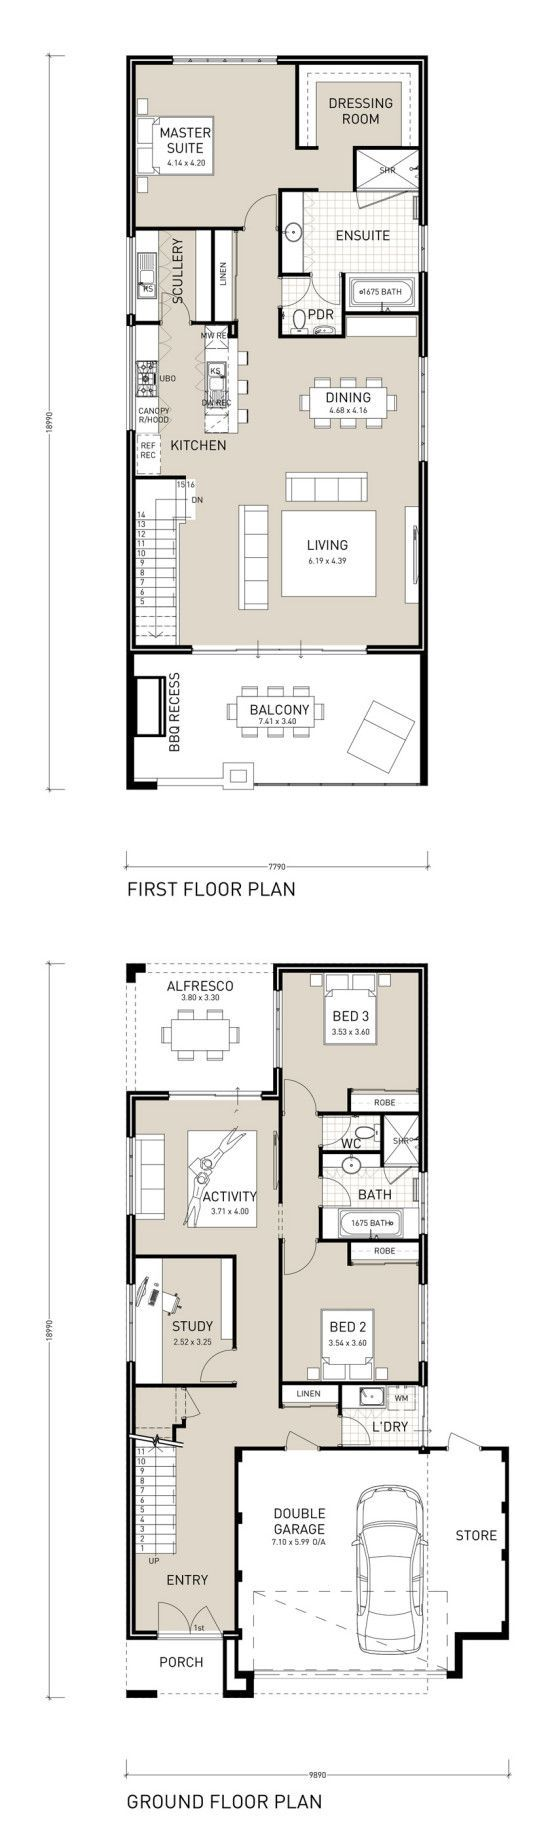 Design For Living House Plans Two Storey House Plans House Plans Narrow Lot House Plans